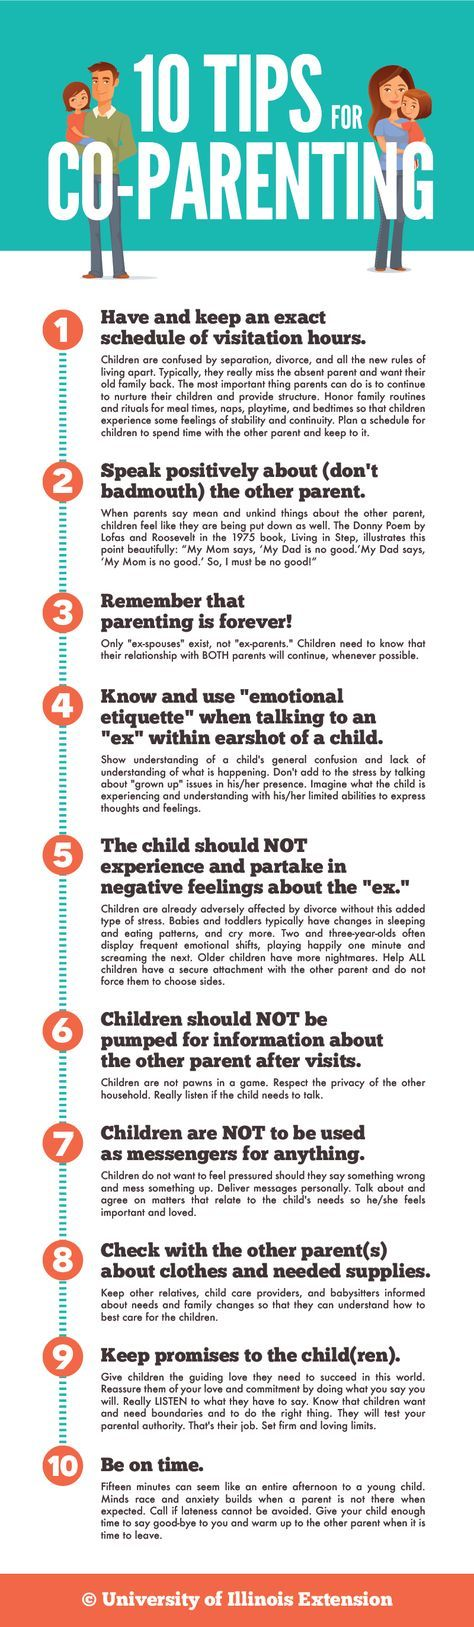 Co Parenting Quotes Amazing 48 Tips For CoParenting Divorce Is Always An Tricky Transition